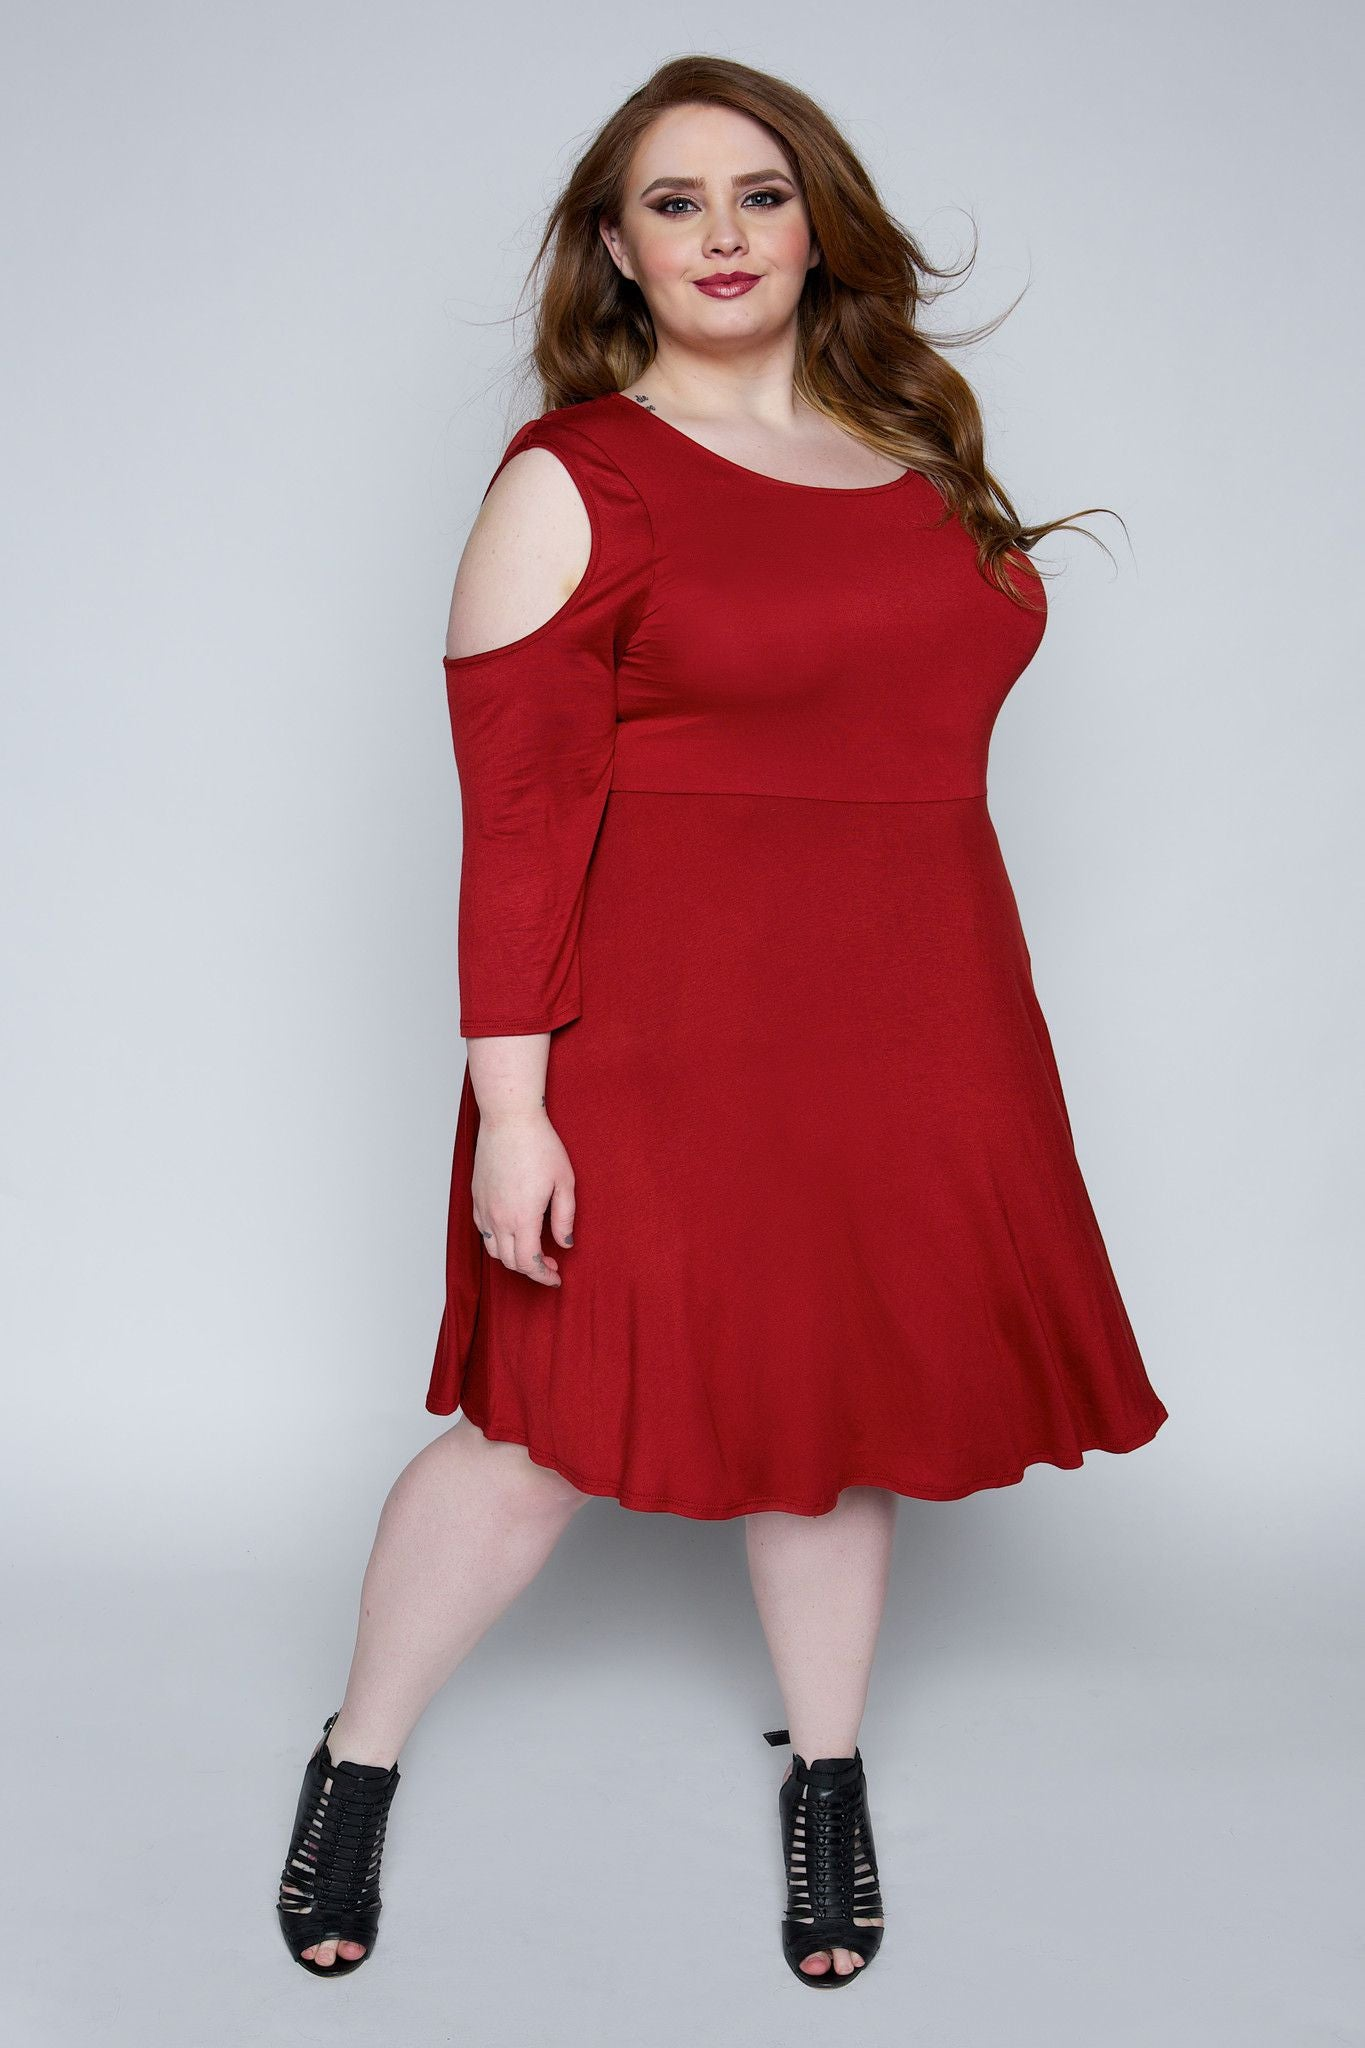 Shopping for plus size clothes online